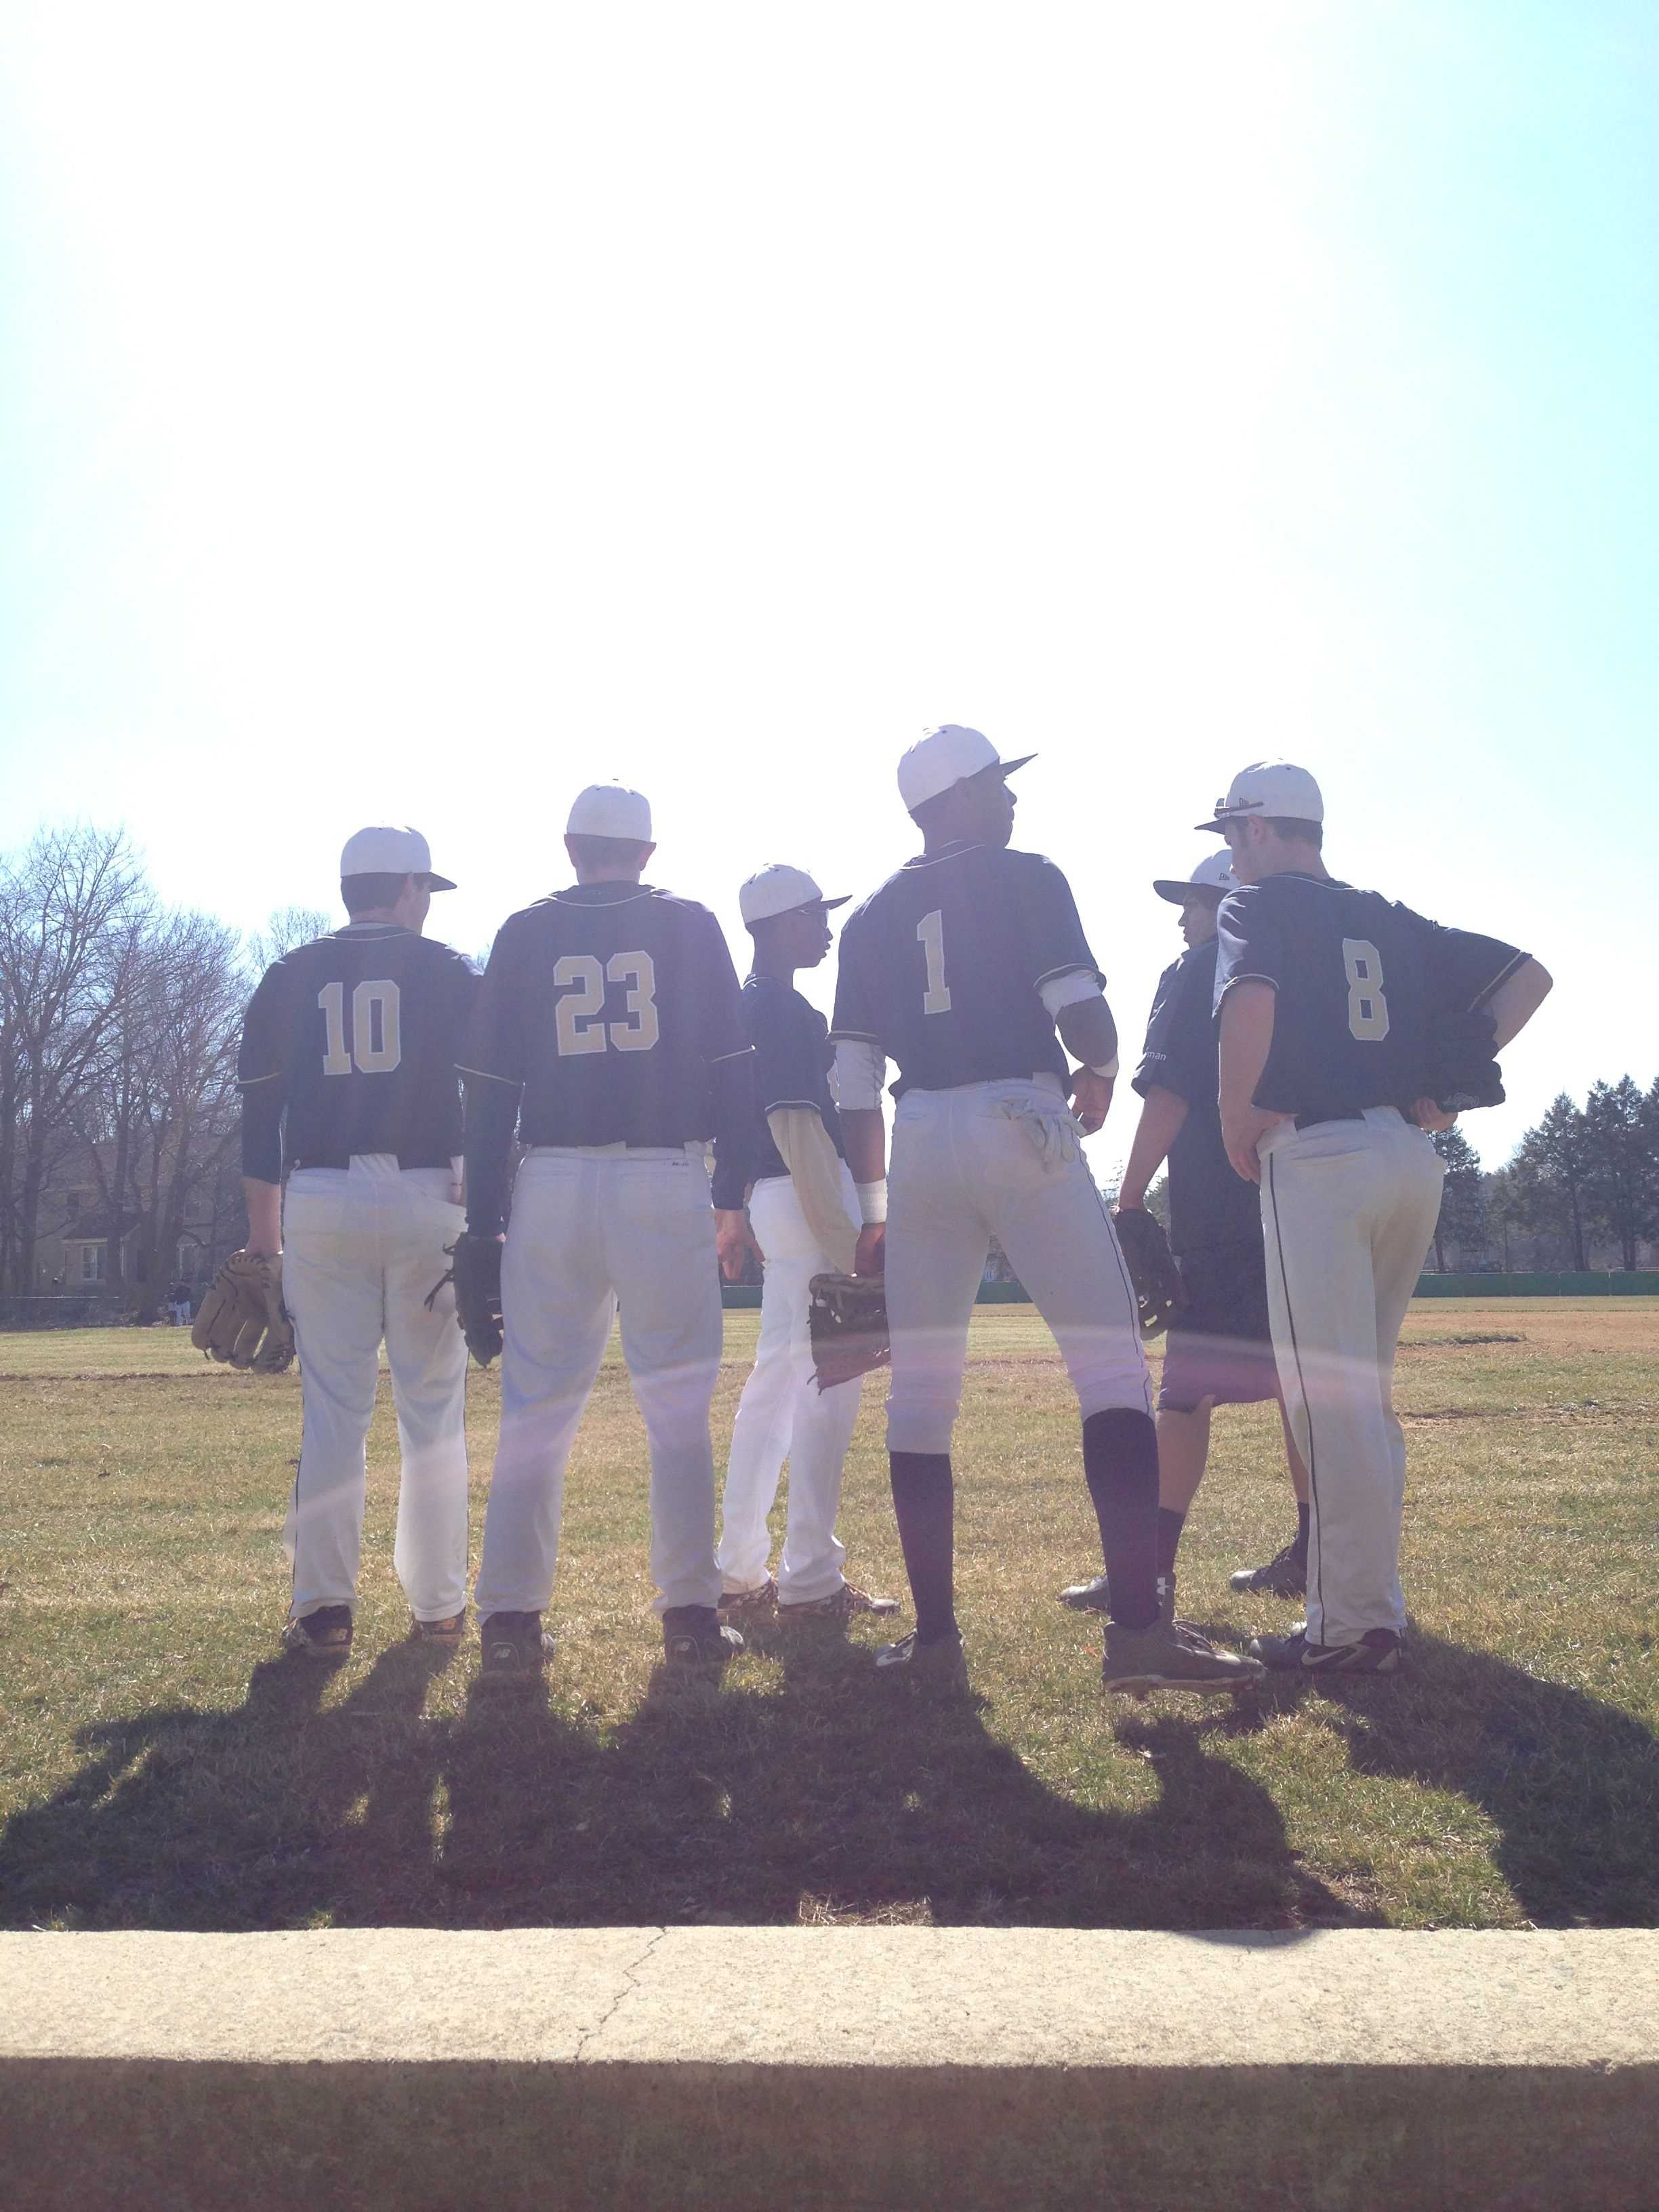 The varsity baseball team gathers before their game against Lawrenceville.